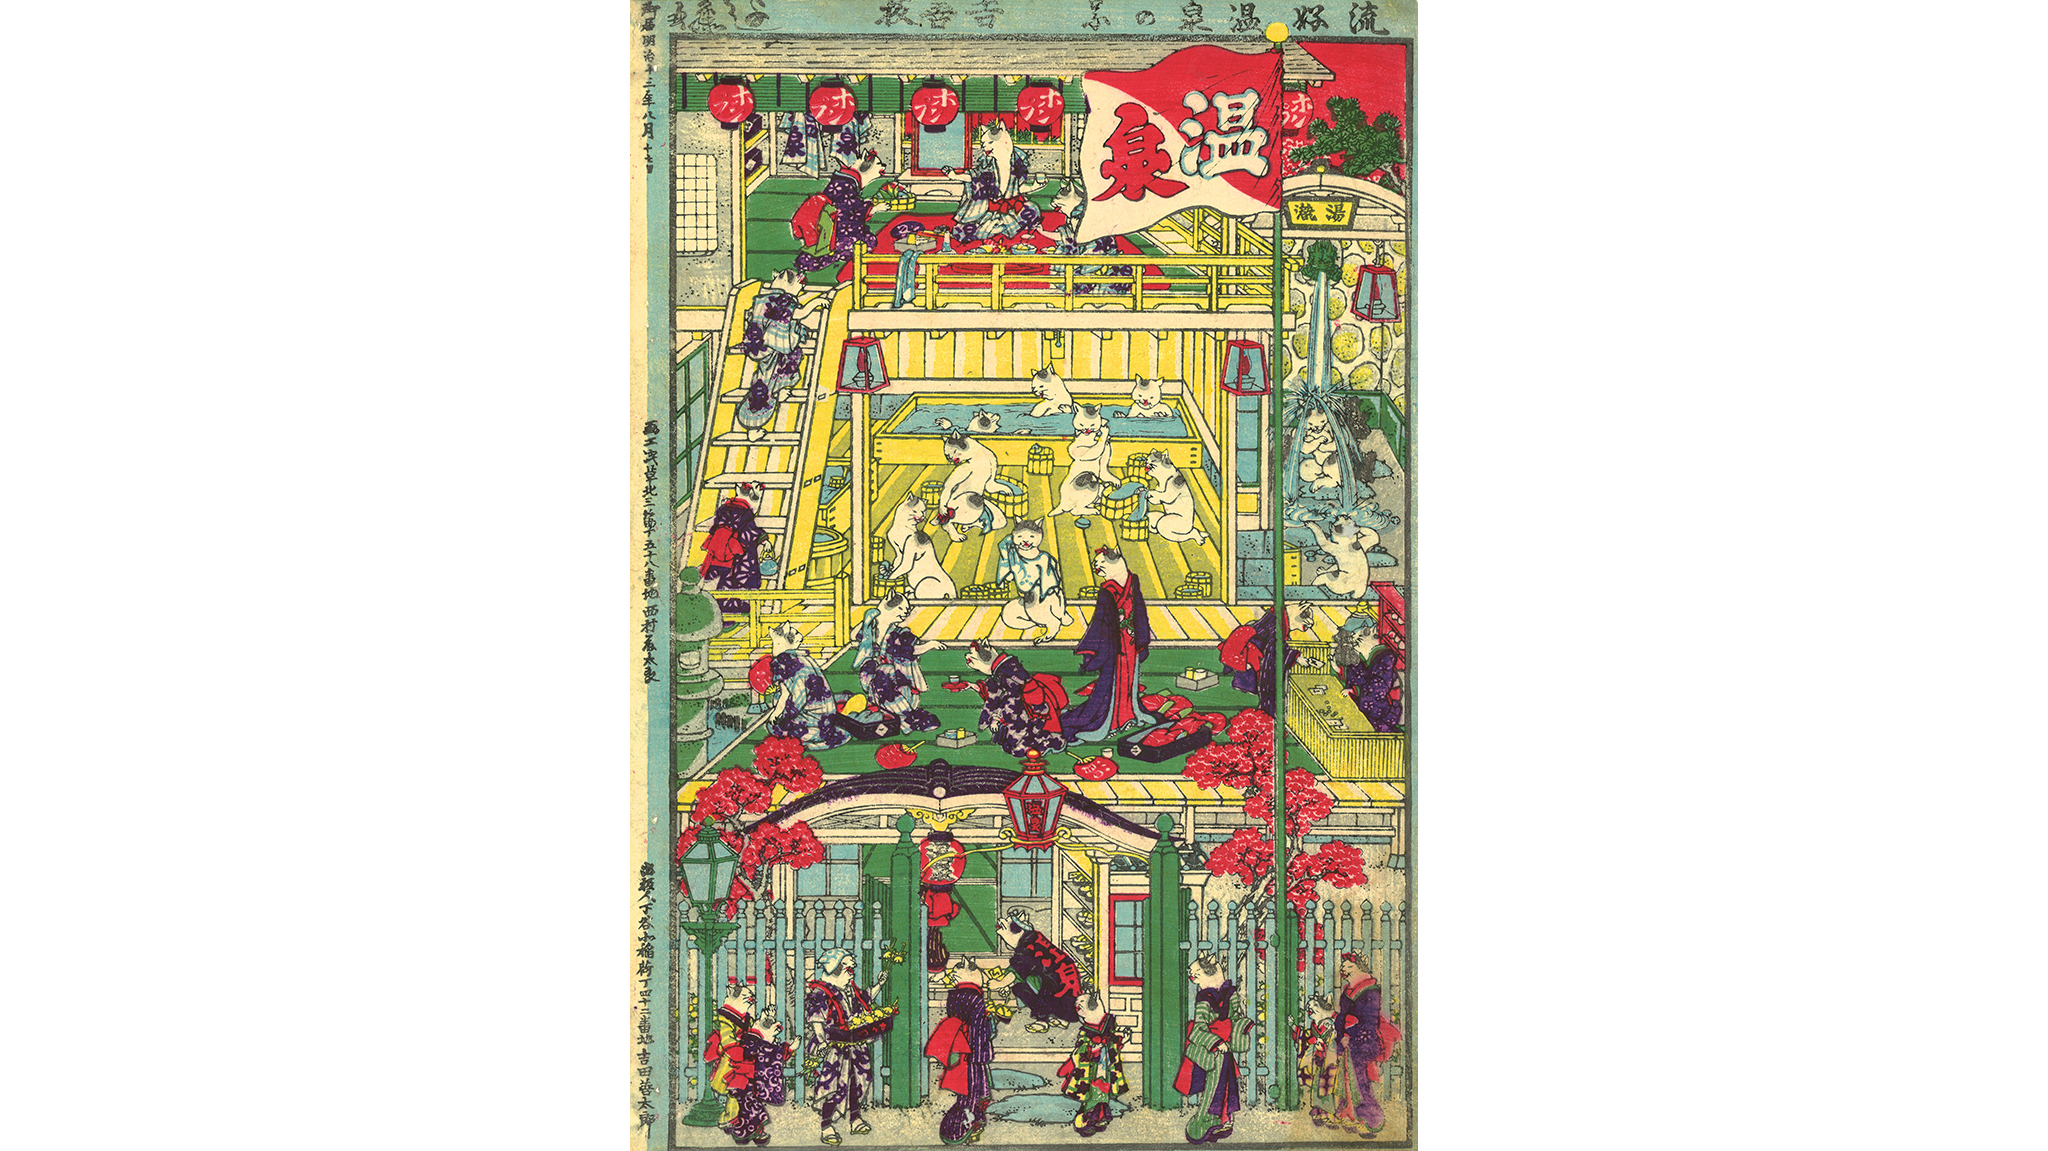 Utagawa Yoshifuji (1828–1887), Popular Hotspring Spa [of Cats], 1880. Color woodblock print; 22 ½ x 16 inches.